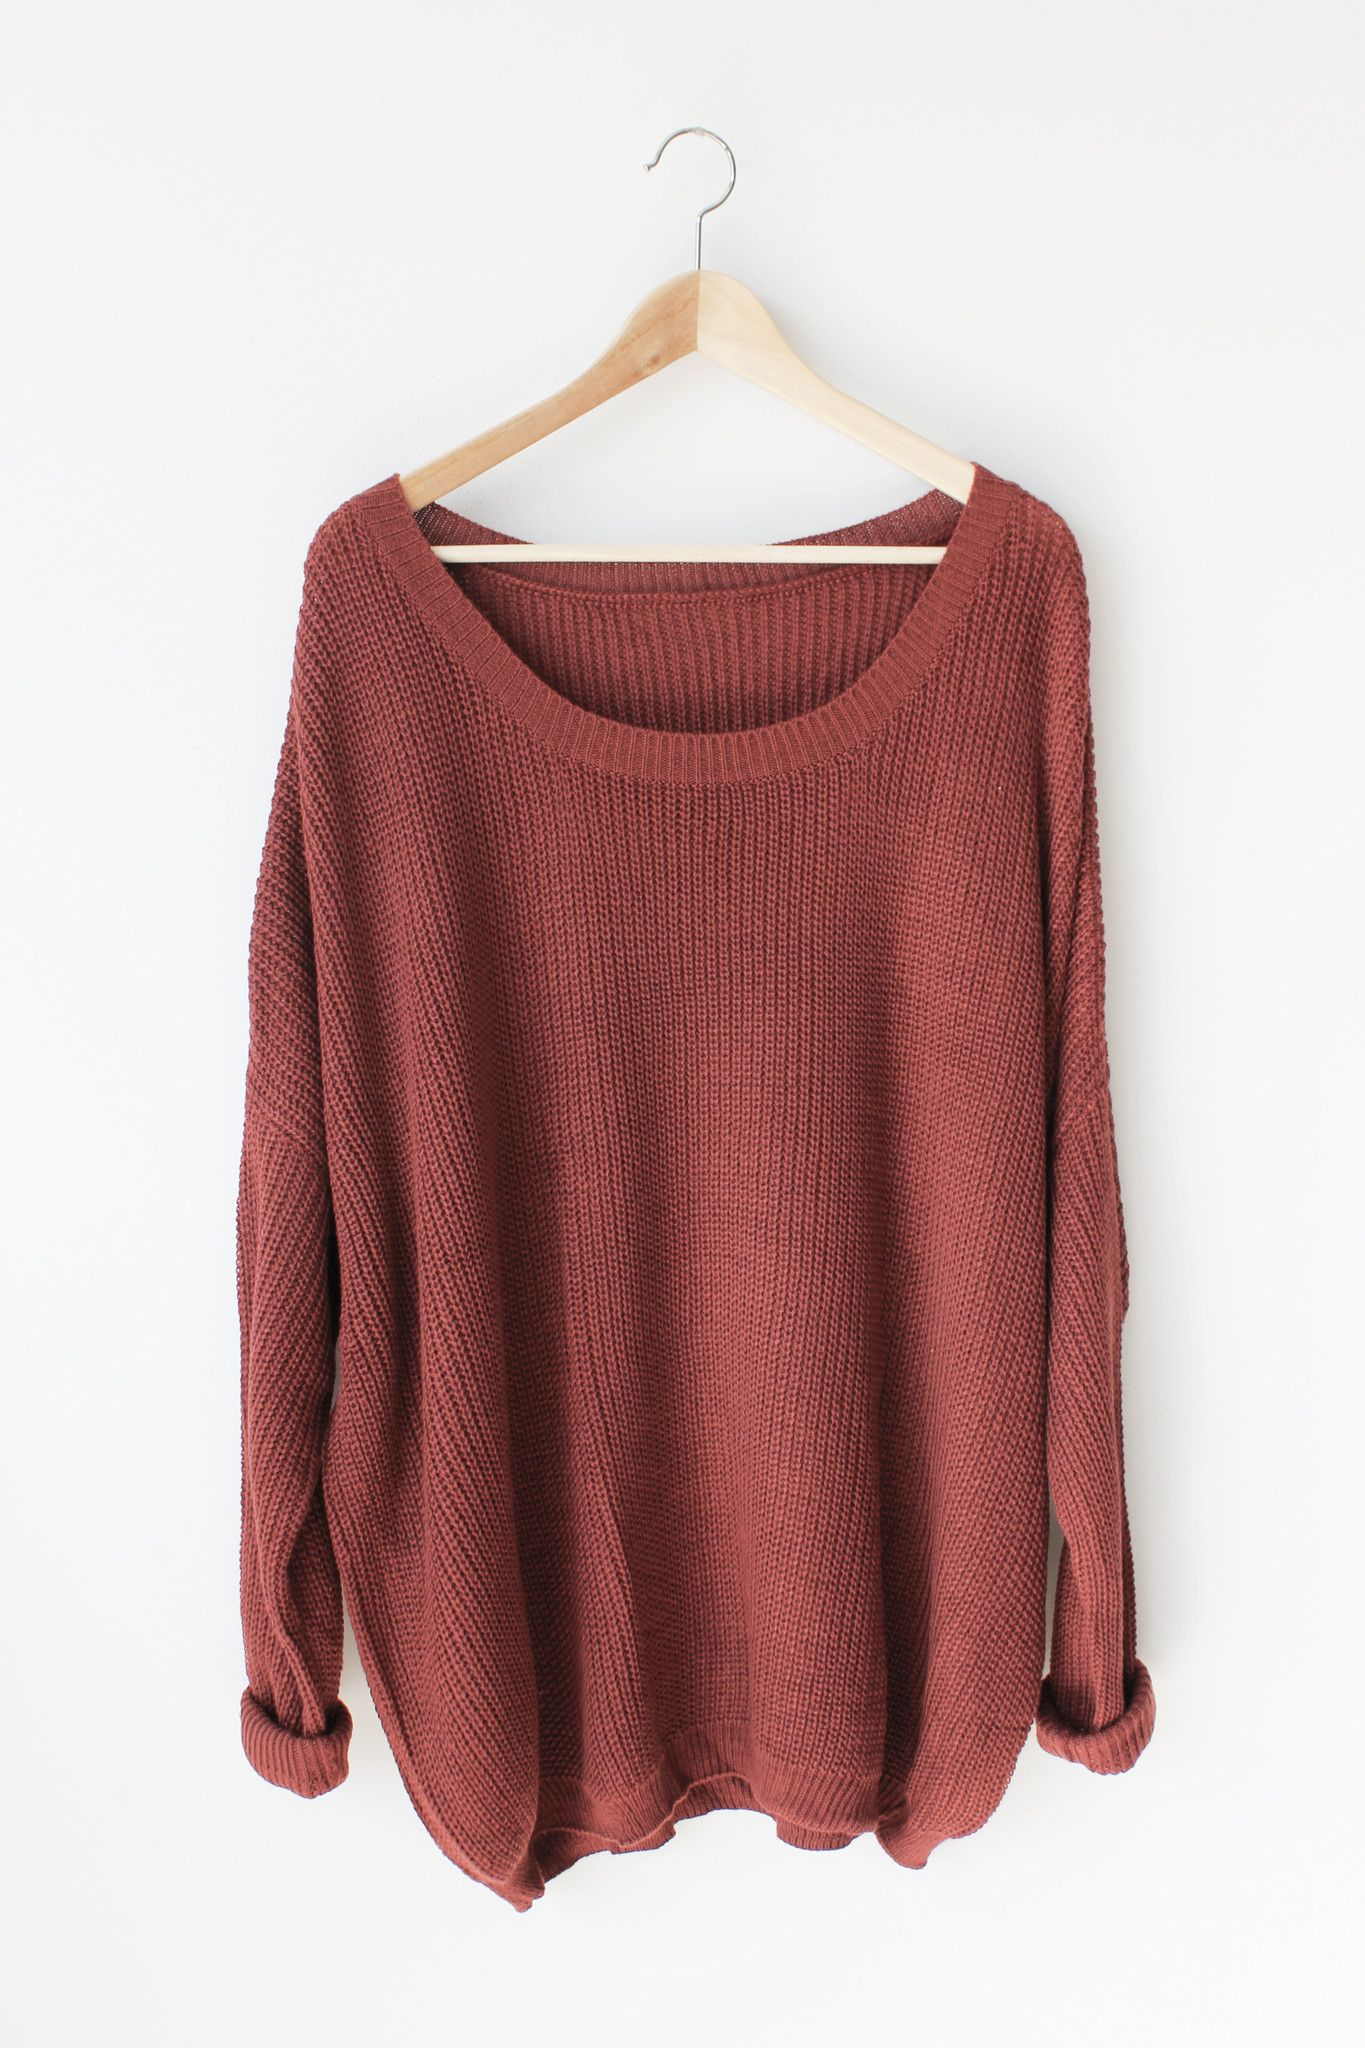 """- Details - Size - Shipping - • 55% Cotton 45% Acrylic • Soft oversize knit sweater • Hand Wash • Line dry • U.S.A • Measured from small • Length 29.5"""" • Chest 32"""" • Waist 20"""" - Free domestic shipping"""